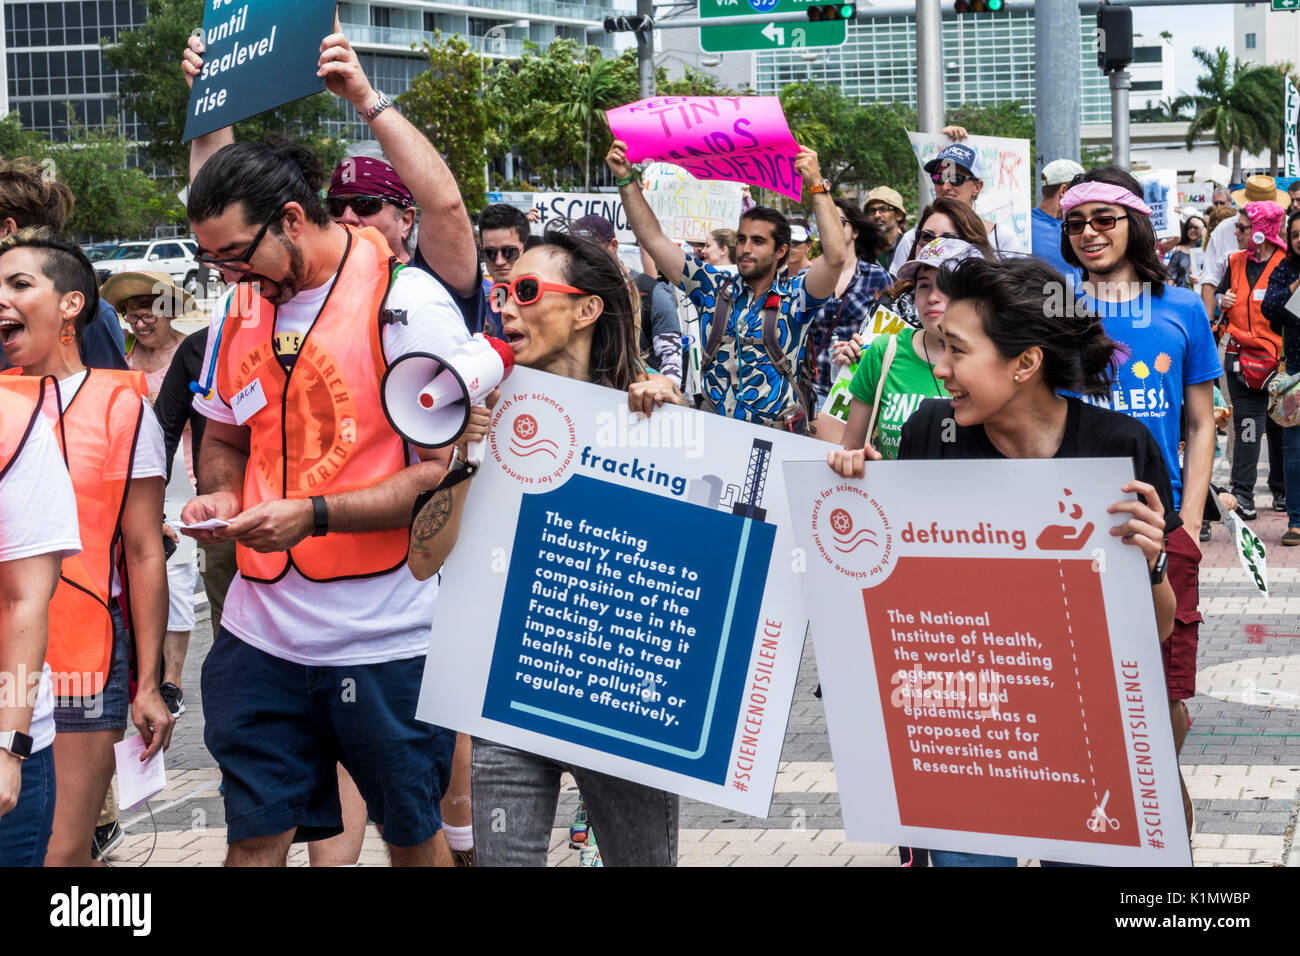 Miami Florida Museum Park March for Science protest rally sign protester marching posters signs fracking Stock Photo